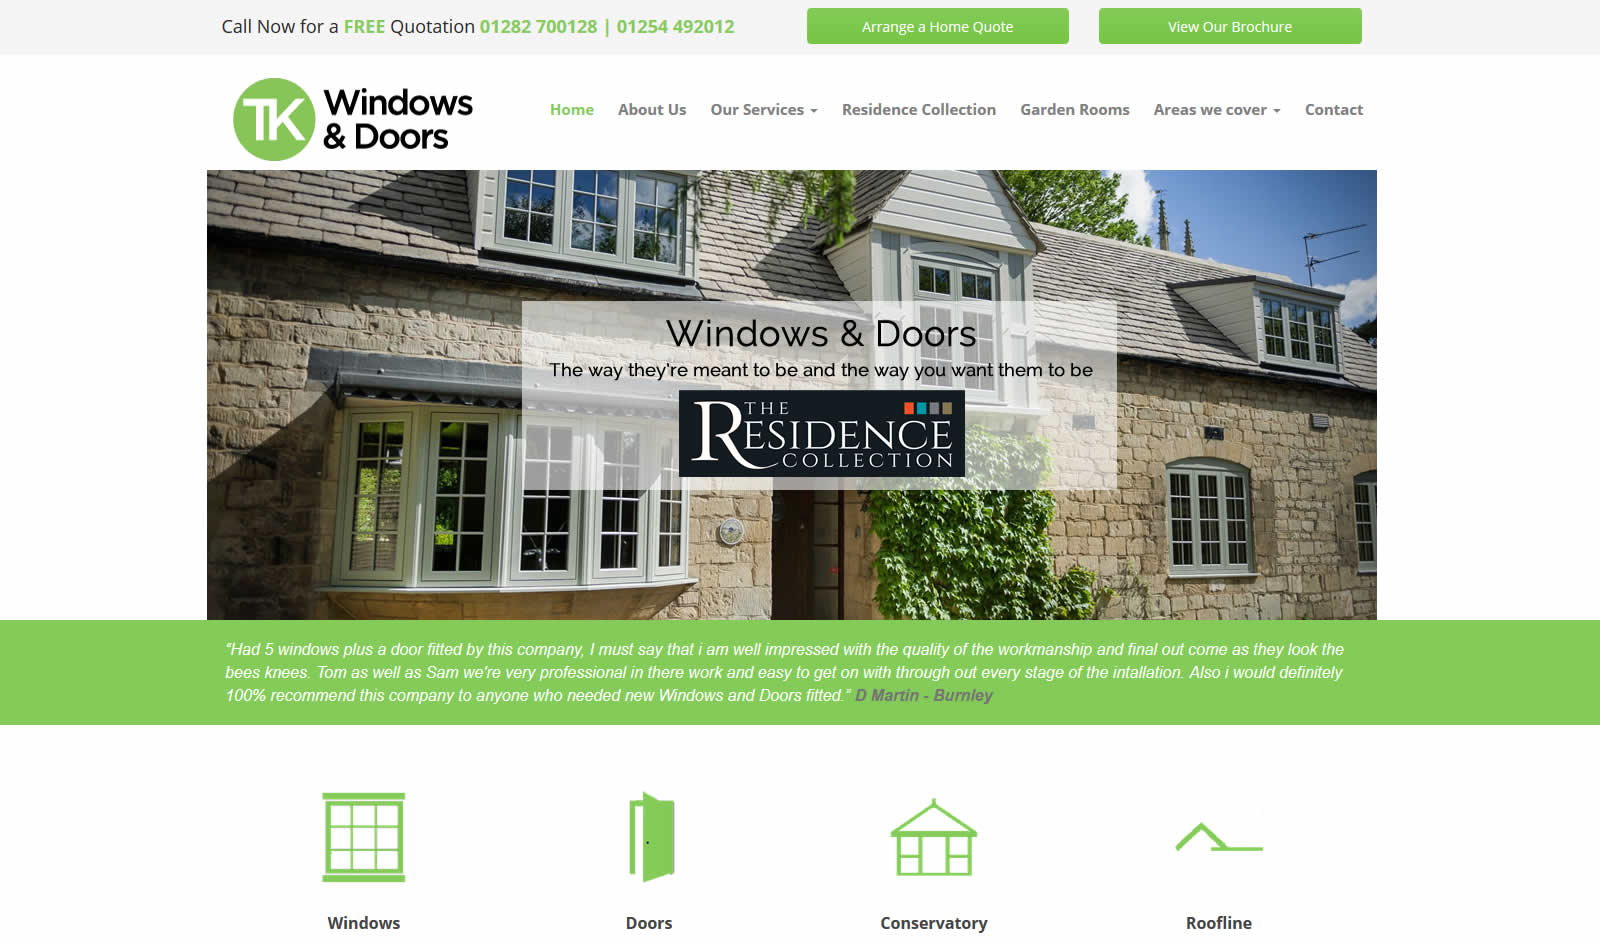 TK Windows & Doors